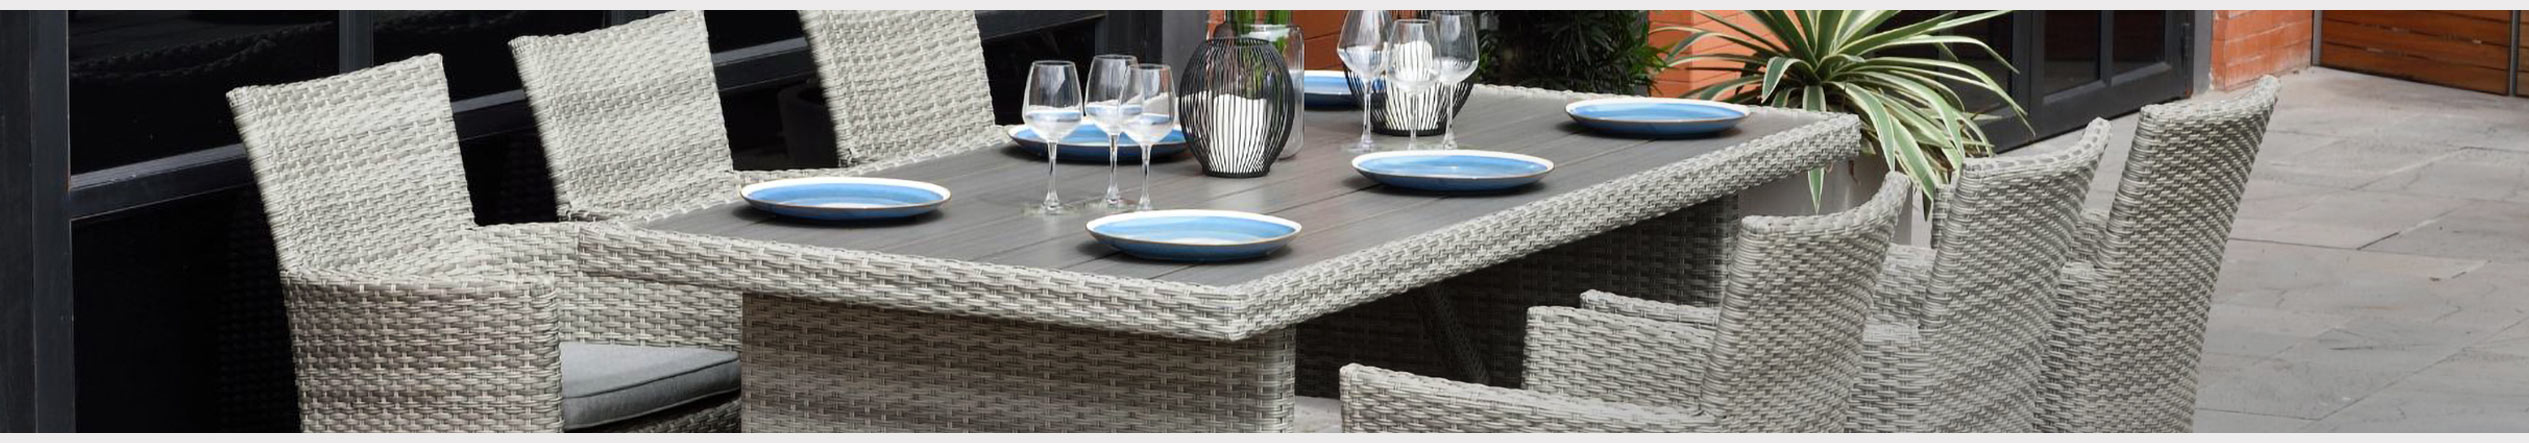 Outdoor Dining Tables and Chairs  for your patio, deck, porch or backyard